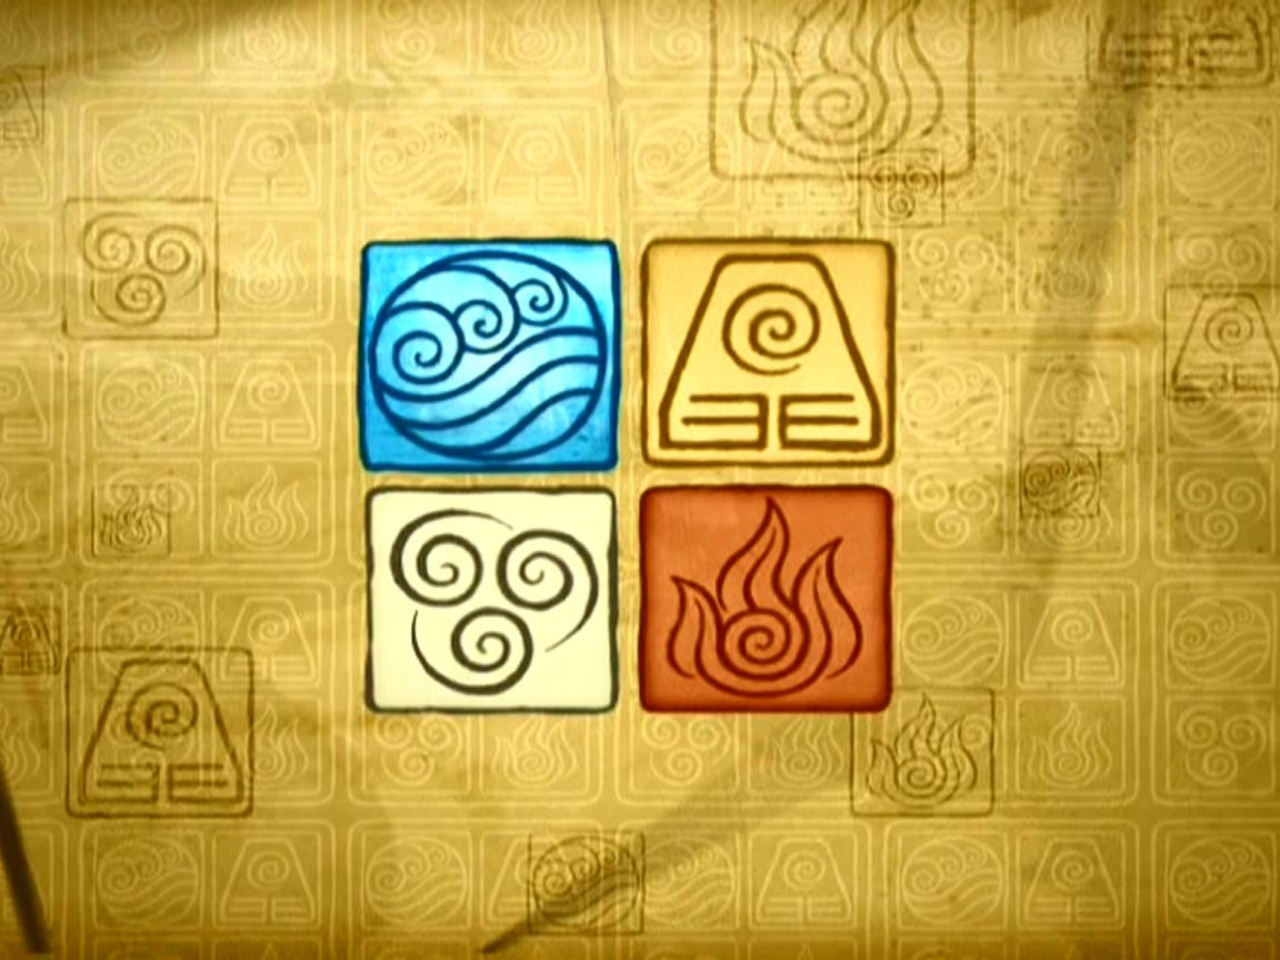 Avatar the last airbender earth air fire water wallpaper HQ WALLPAPER - (#173894)